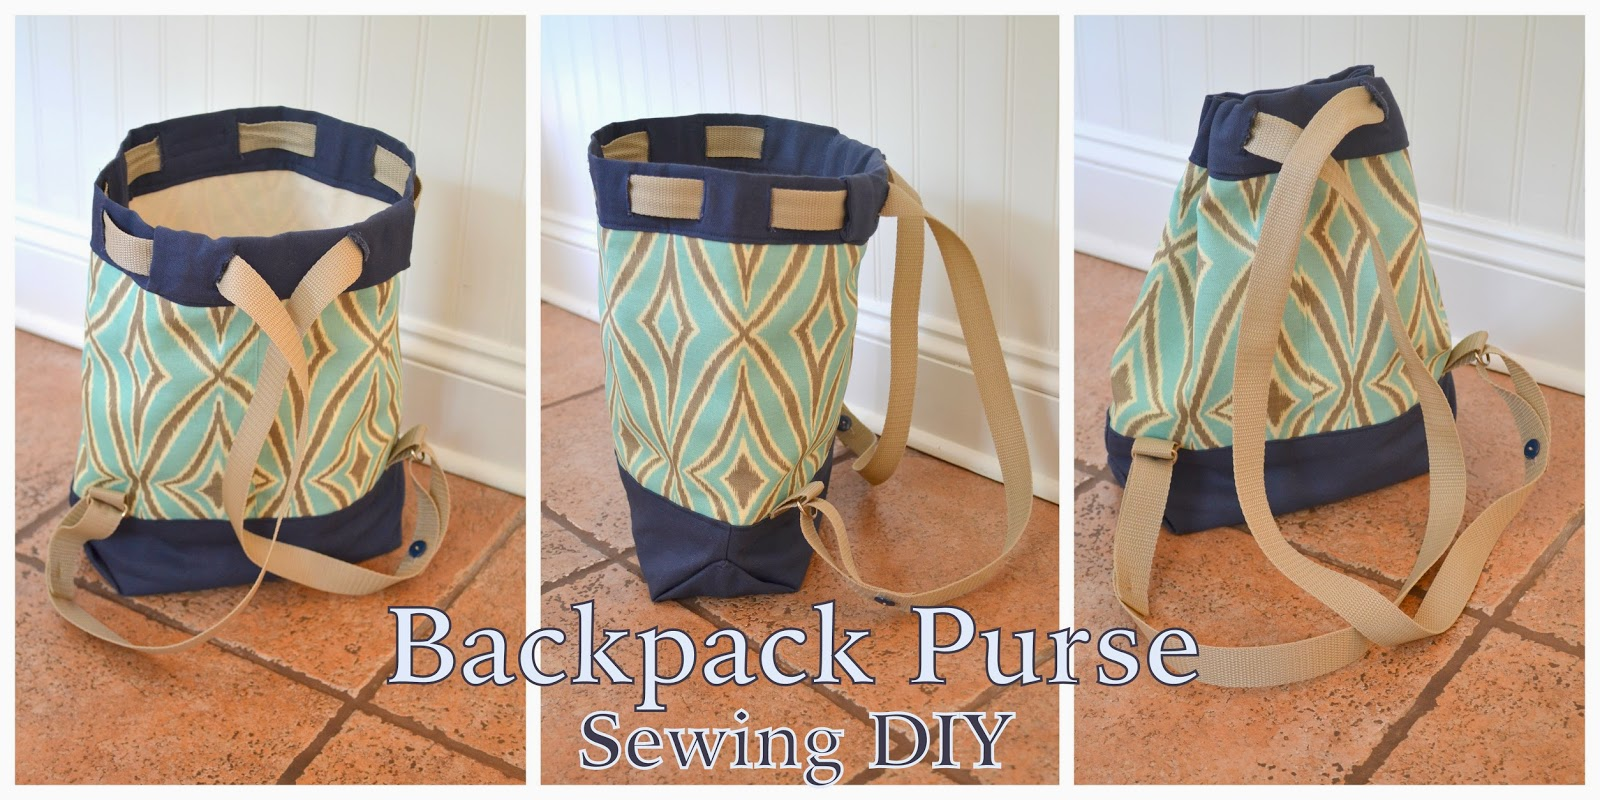 DIY Backpack Purse - Sewing A Diaper Bag Purse | Logic & Laughter